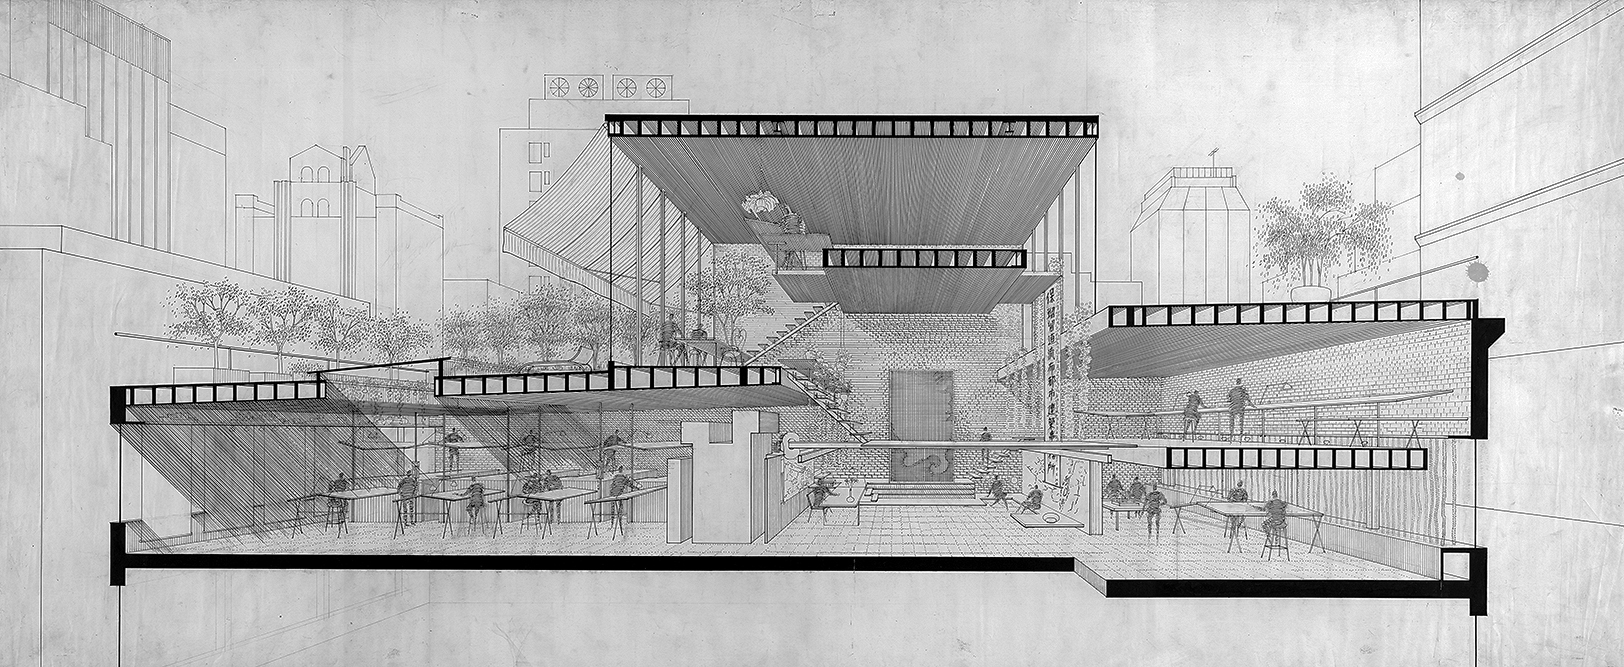 Paul Rudolph Architectural Office, New York City, New York. Section Perspective Rendering.